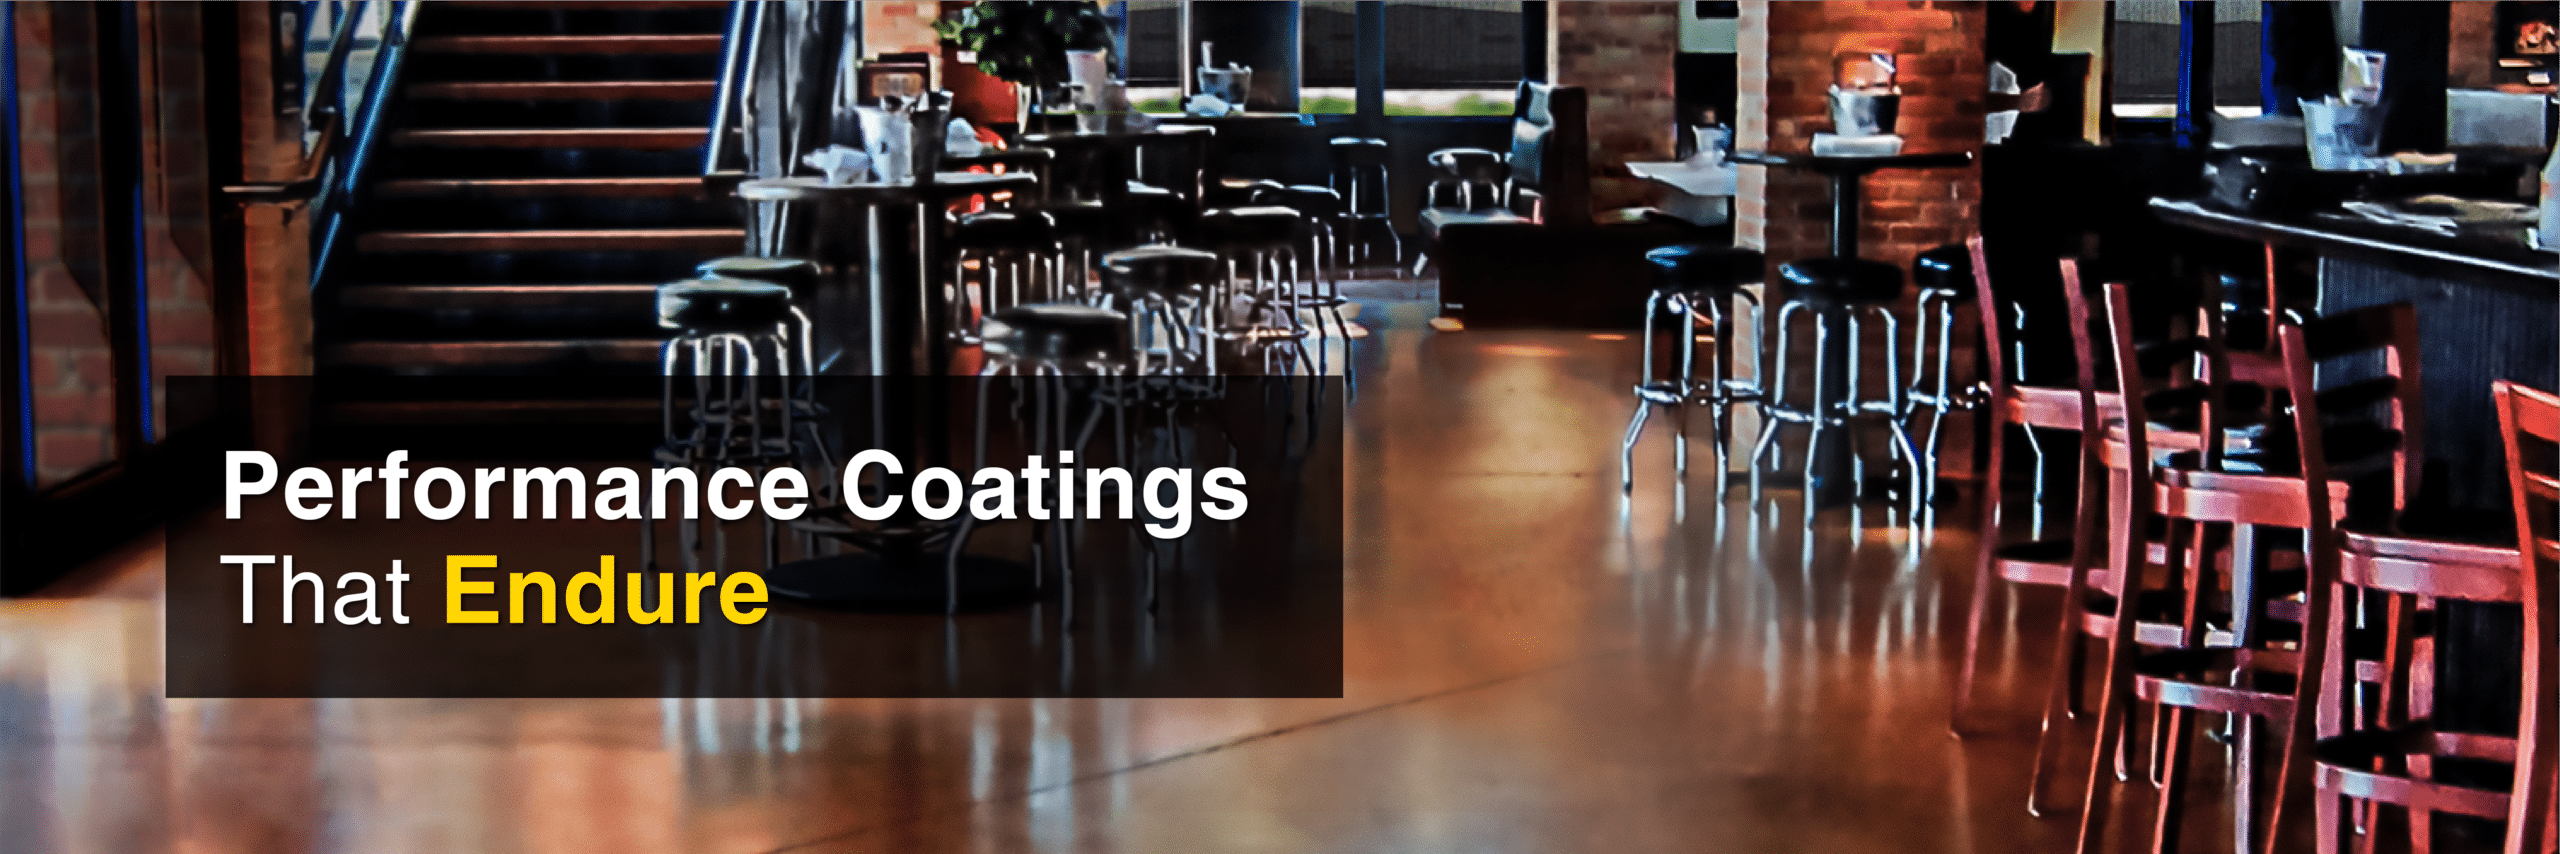 Pub with concrete acid stain and tag line: Performance Coatings That Endure